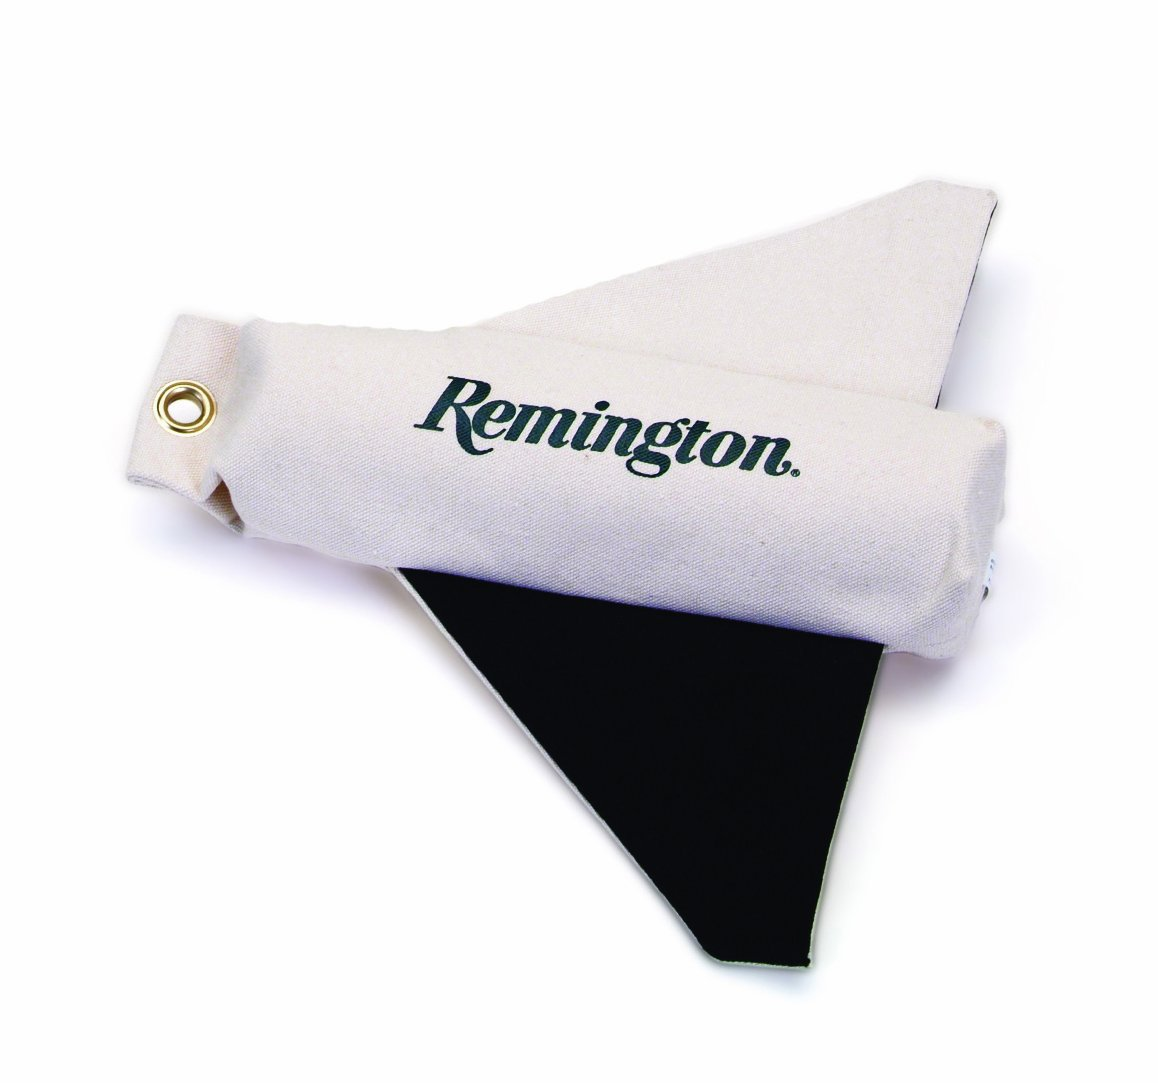 Remington 3-by-12-Inch Winged Retriever Field Training Device by Remington